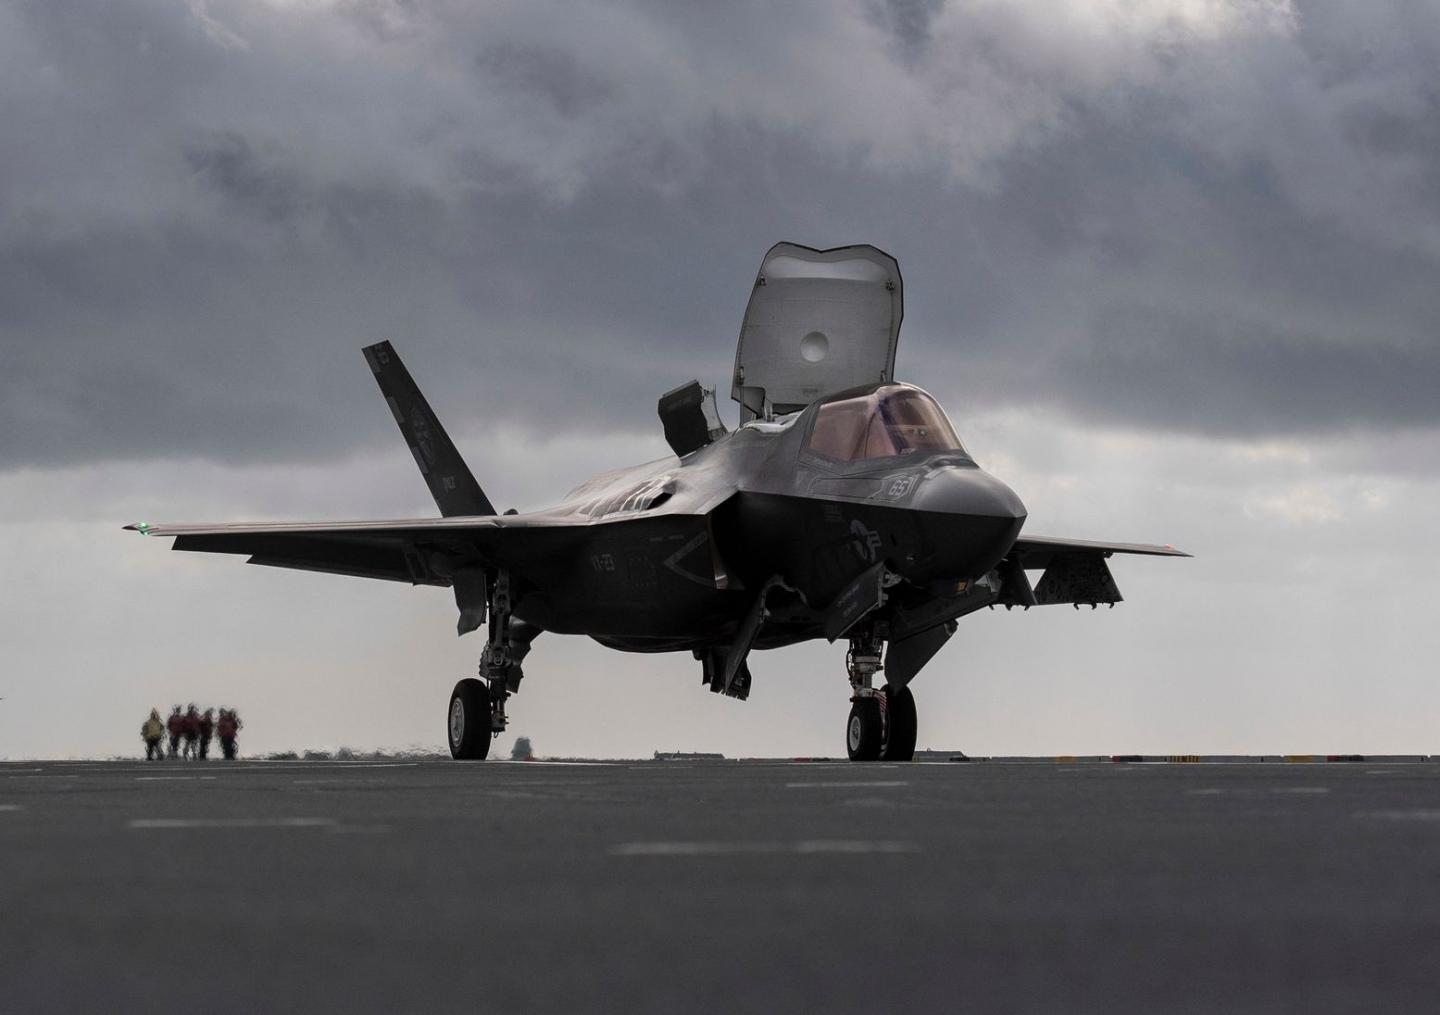 Stealth Shortage: The British Don't Have Enough F-35 Fighters